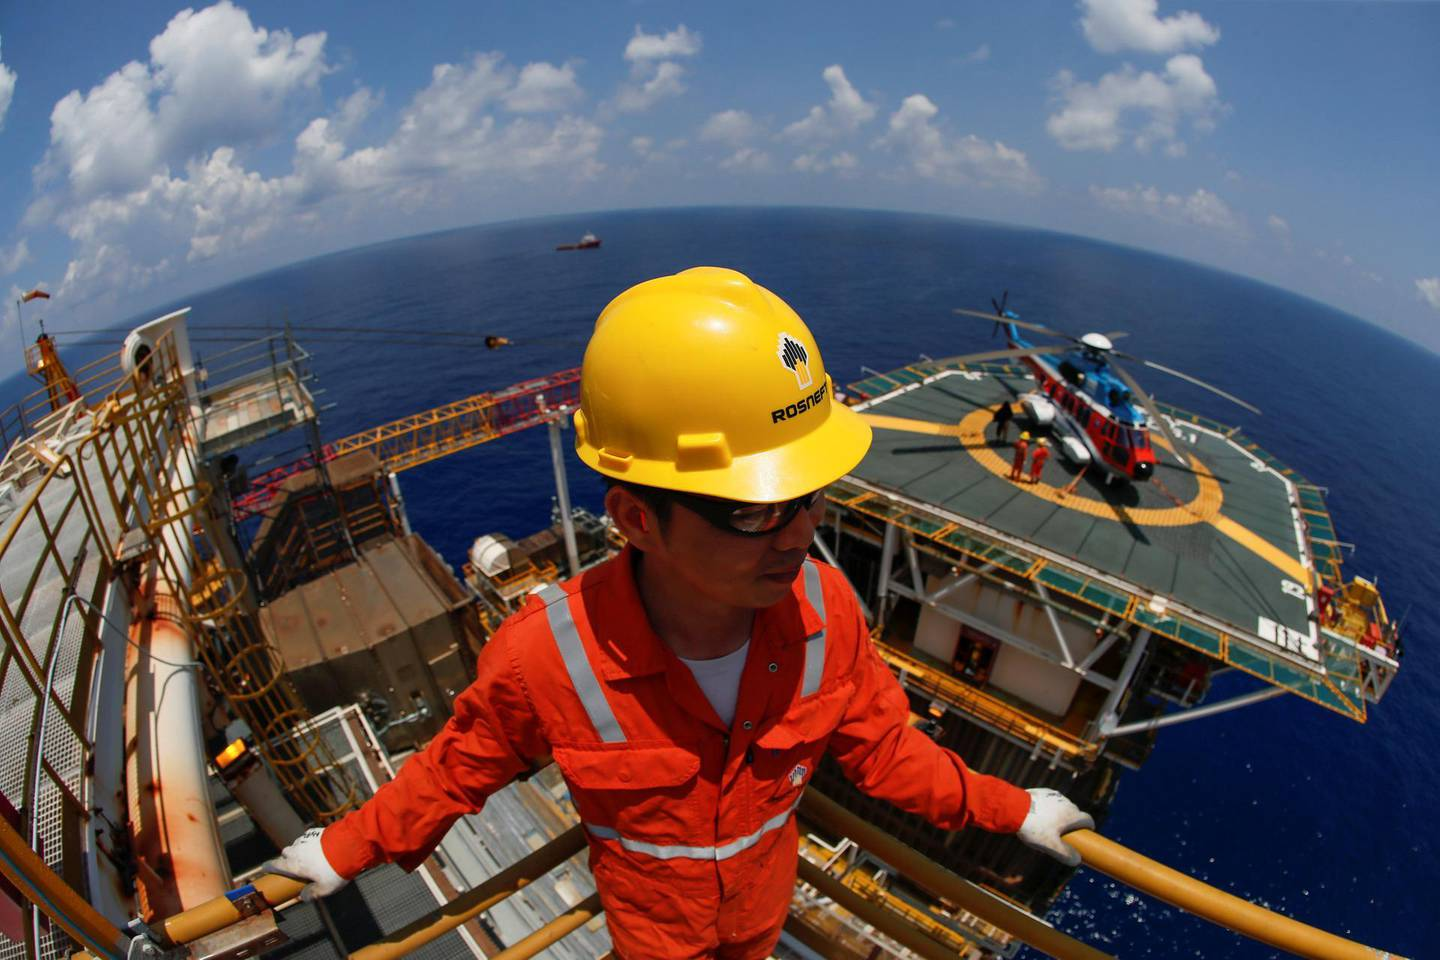 A Rosneft Vietnam employee looks on at the Lan Tay gas platform in the South China Sea off the coast of Vung Tau, Vietnam April 29, 2018. Picture taken April 29, 2018. REUTERS/Maxim Shemetov